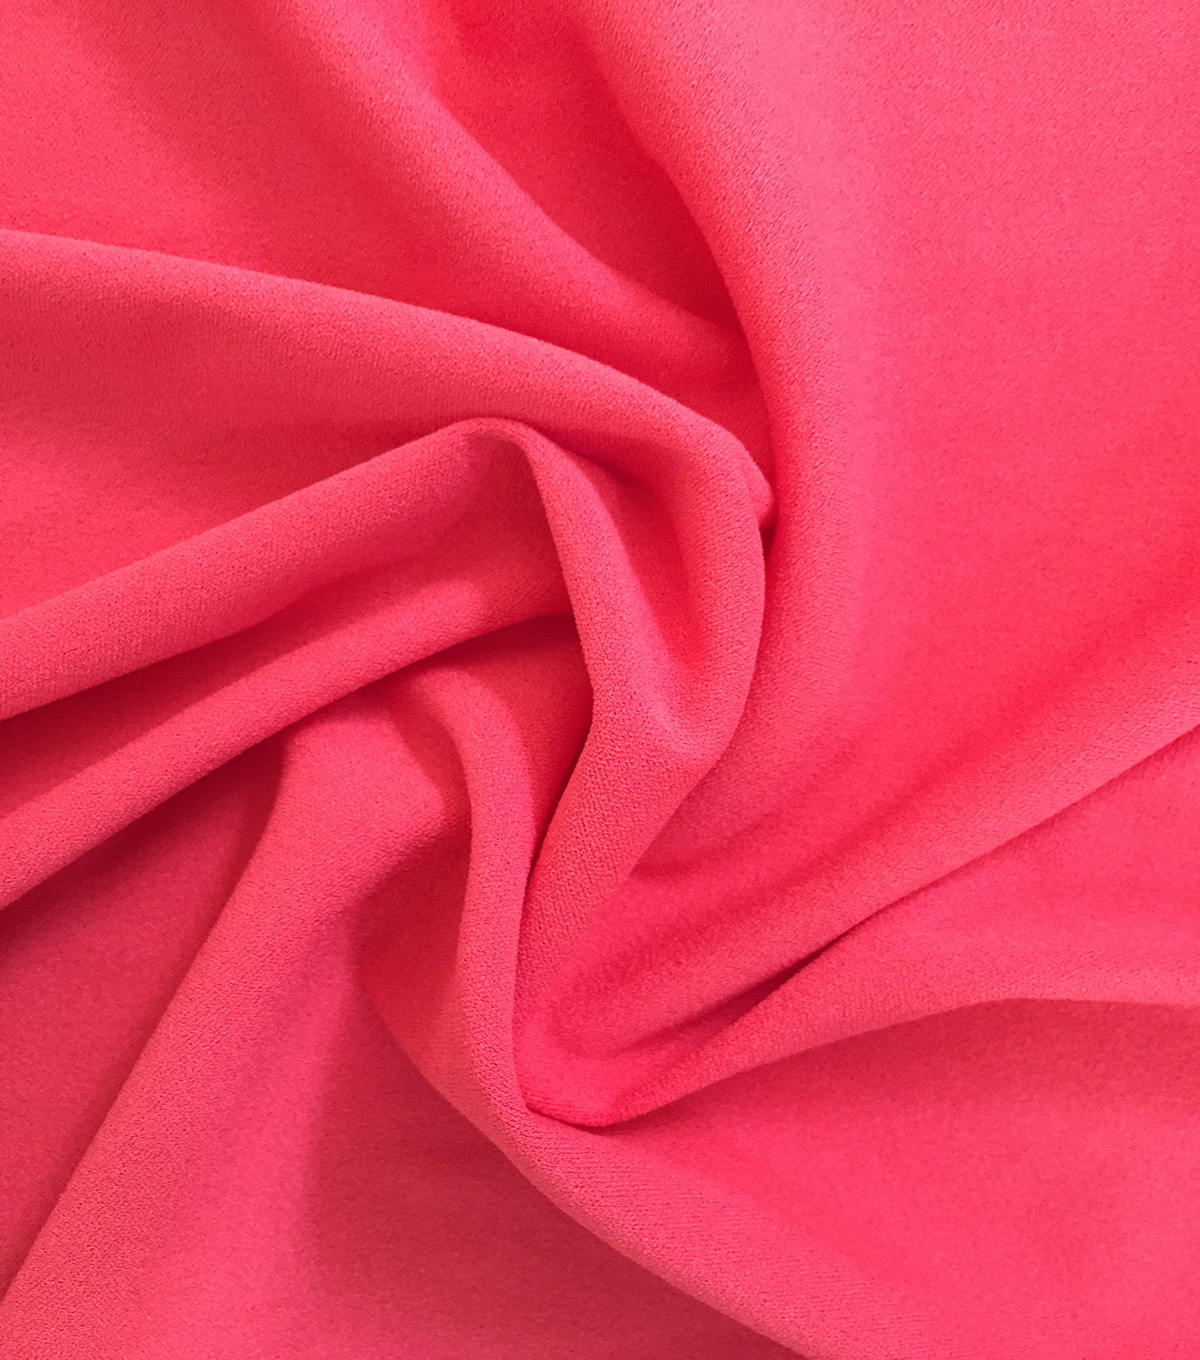 Endless Sea Stretch Crepe Fabric-Coral